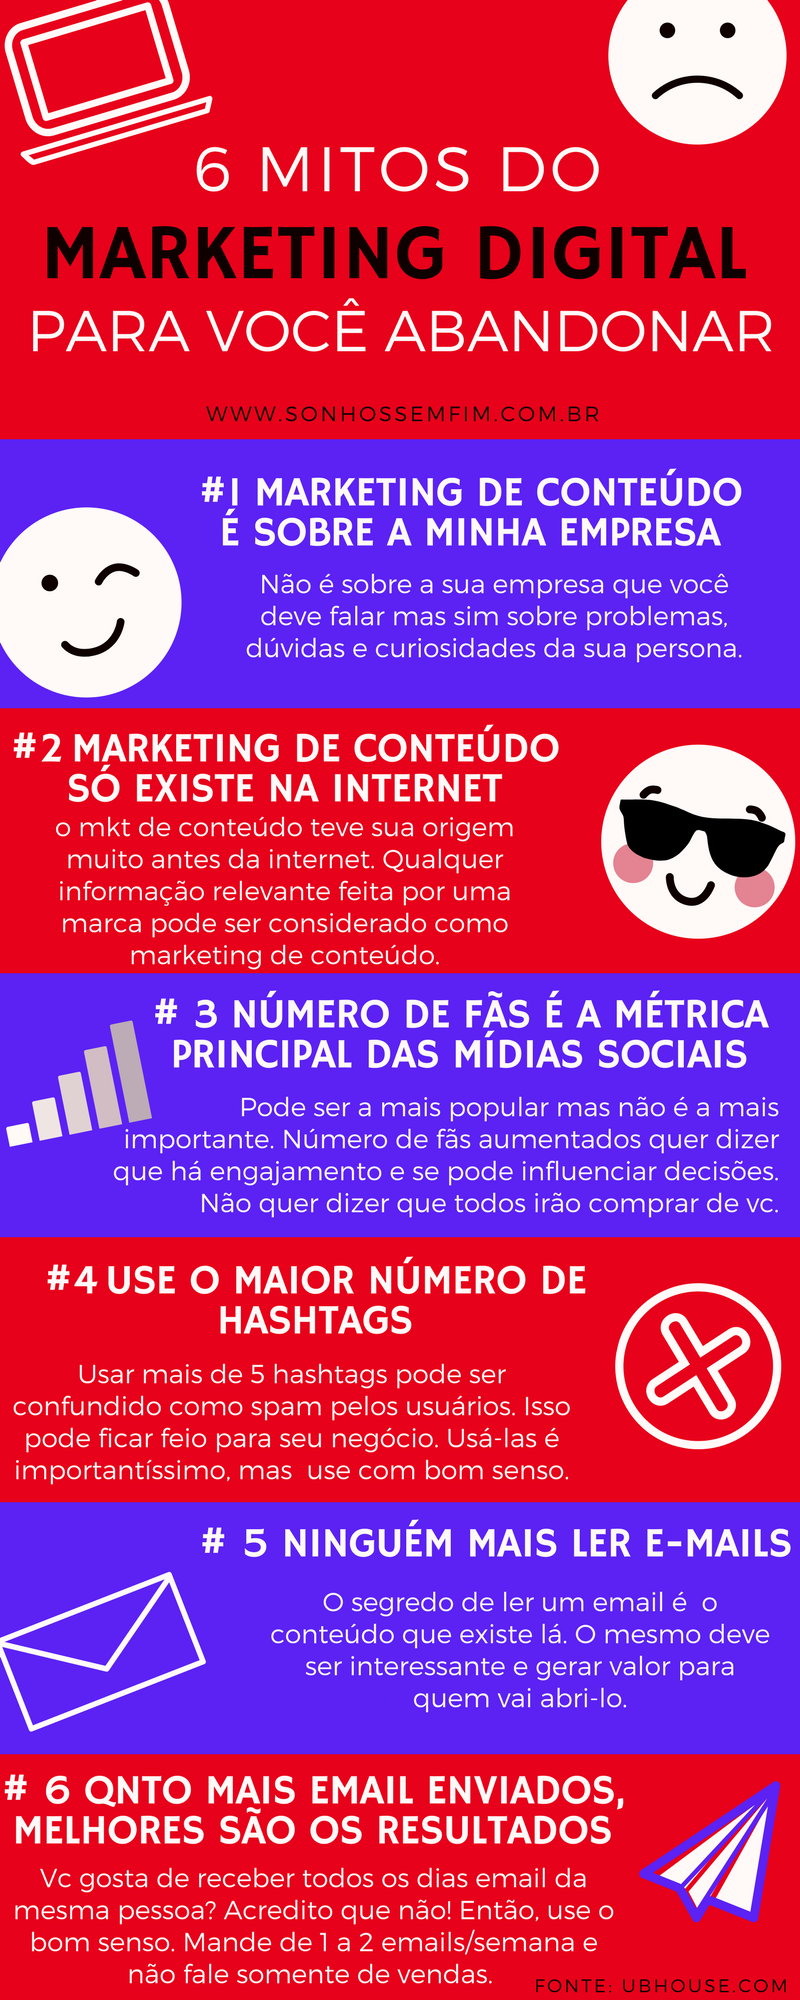 marketing-digital-6-mitos-que-voce-deve-abandonar